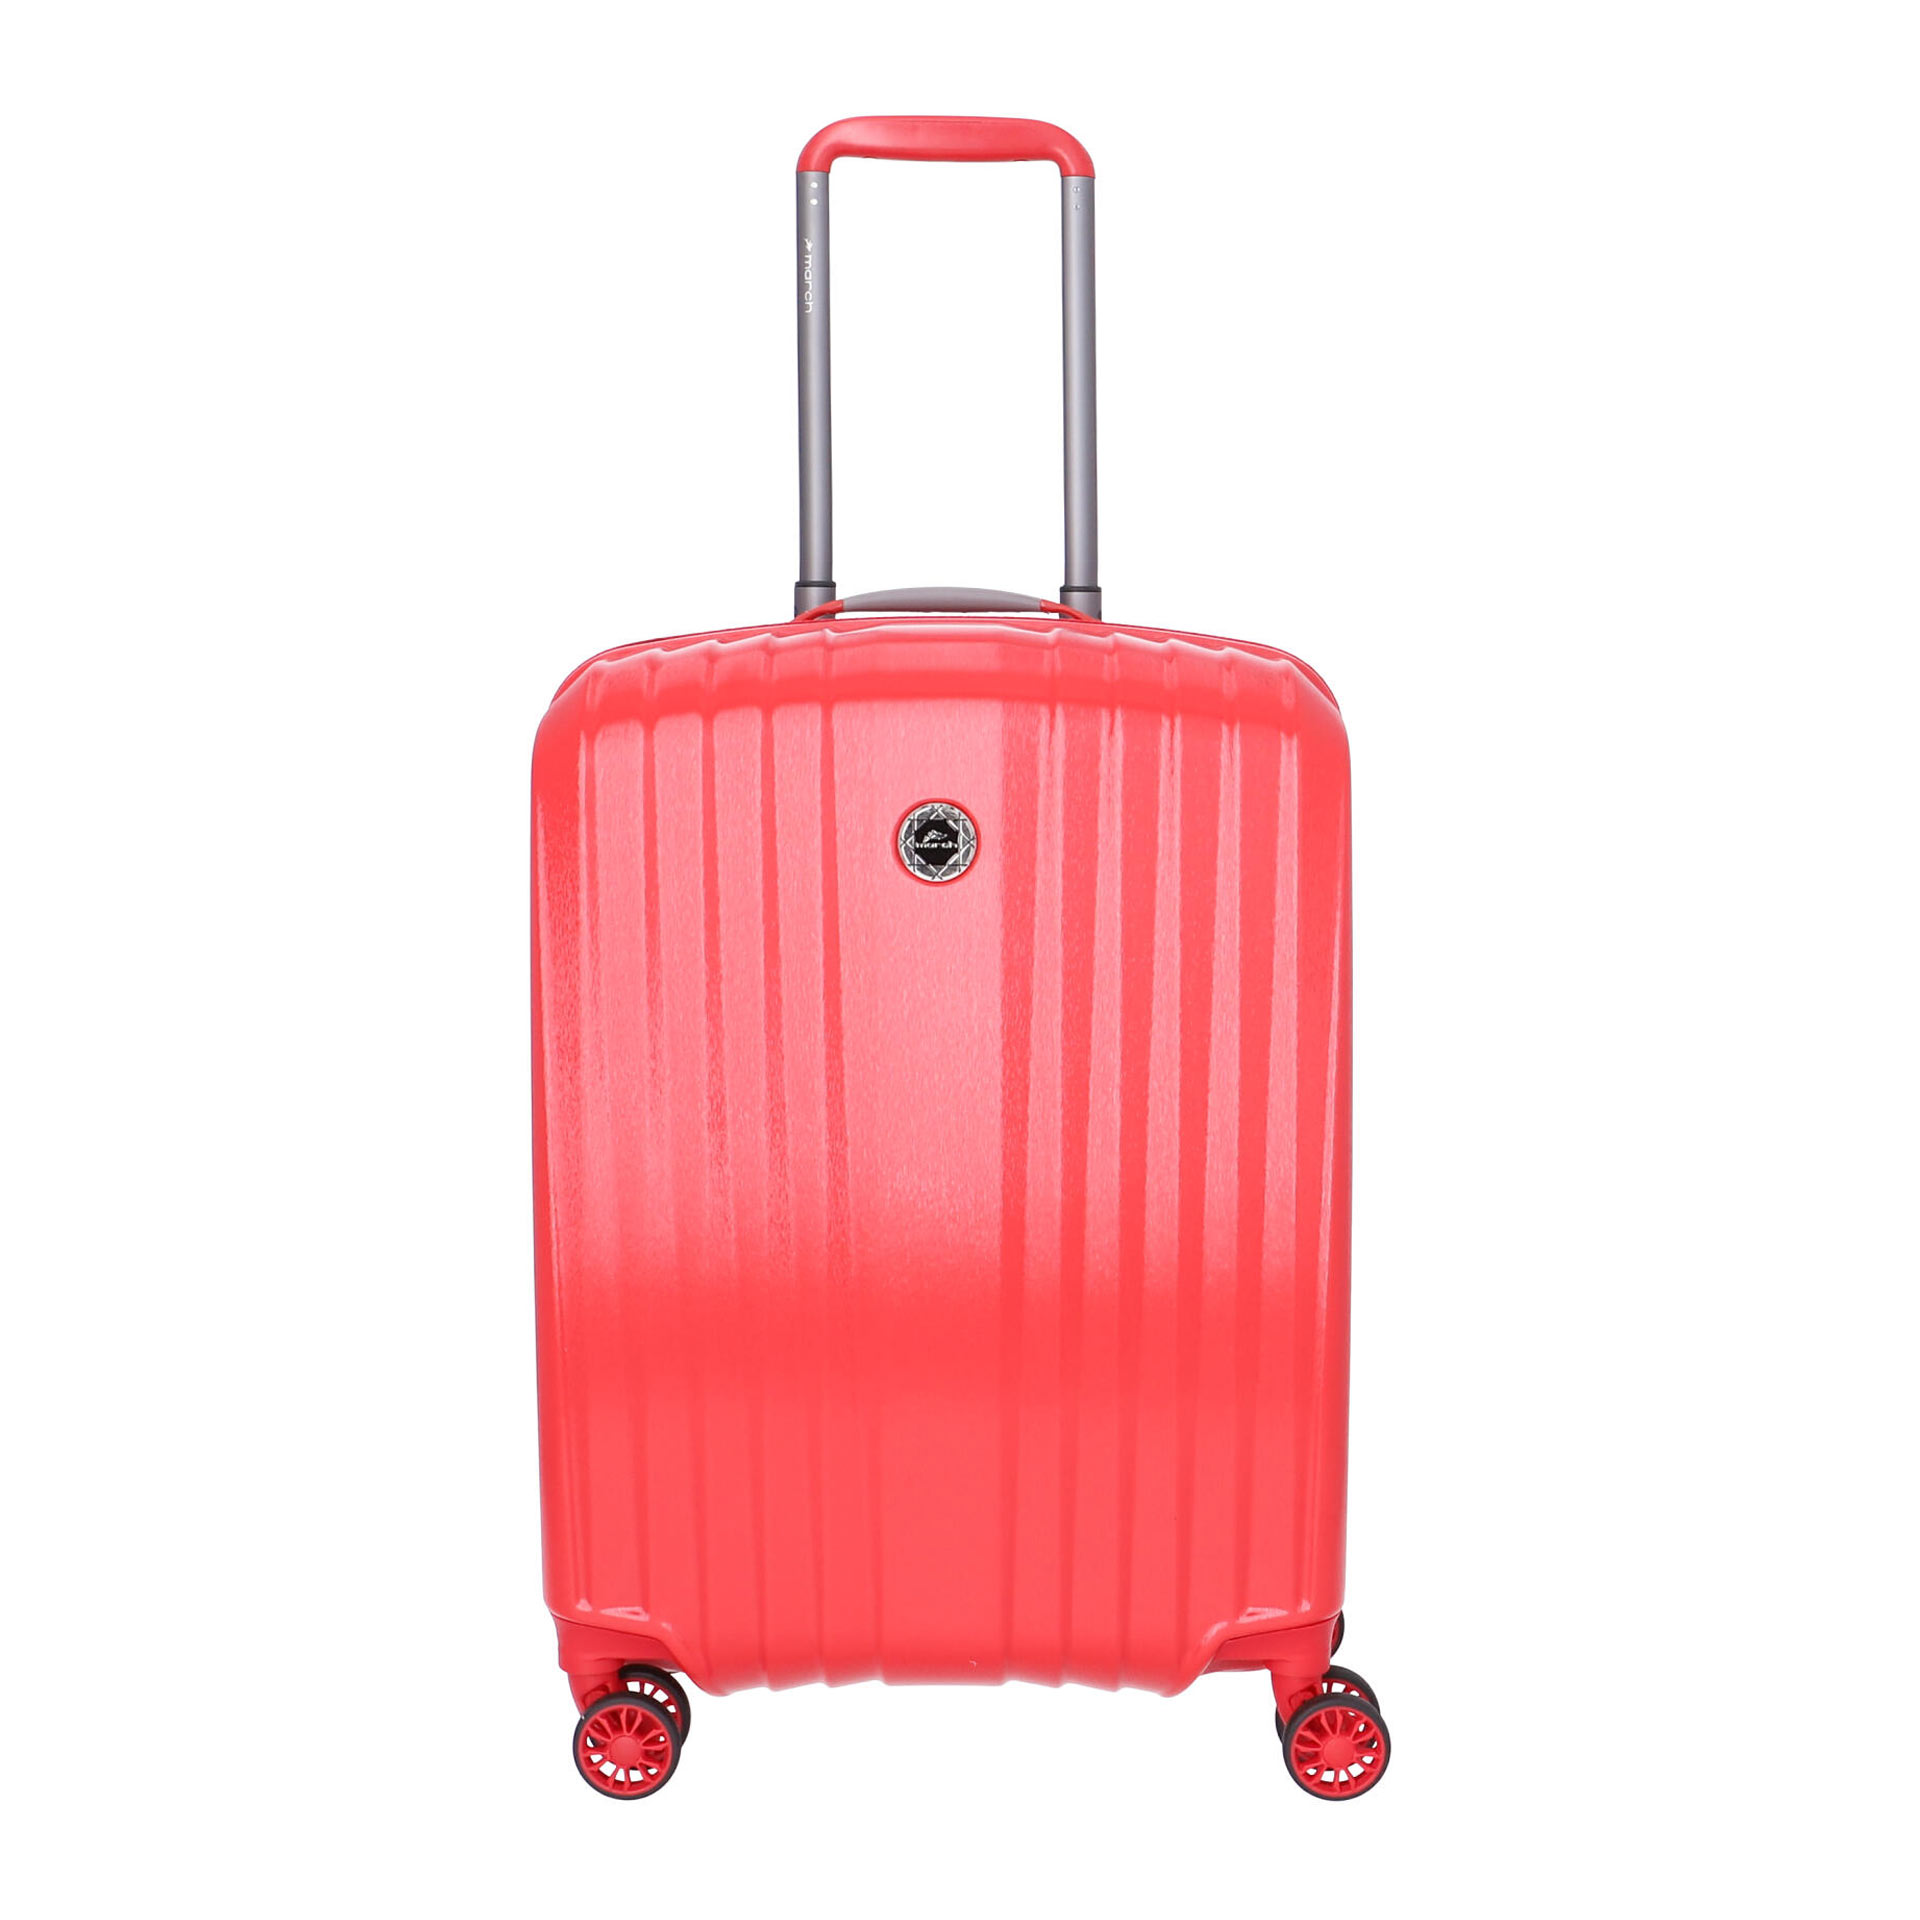 Everest 4-Rad Trolley S red